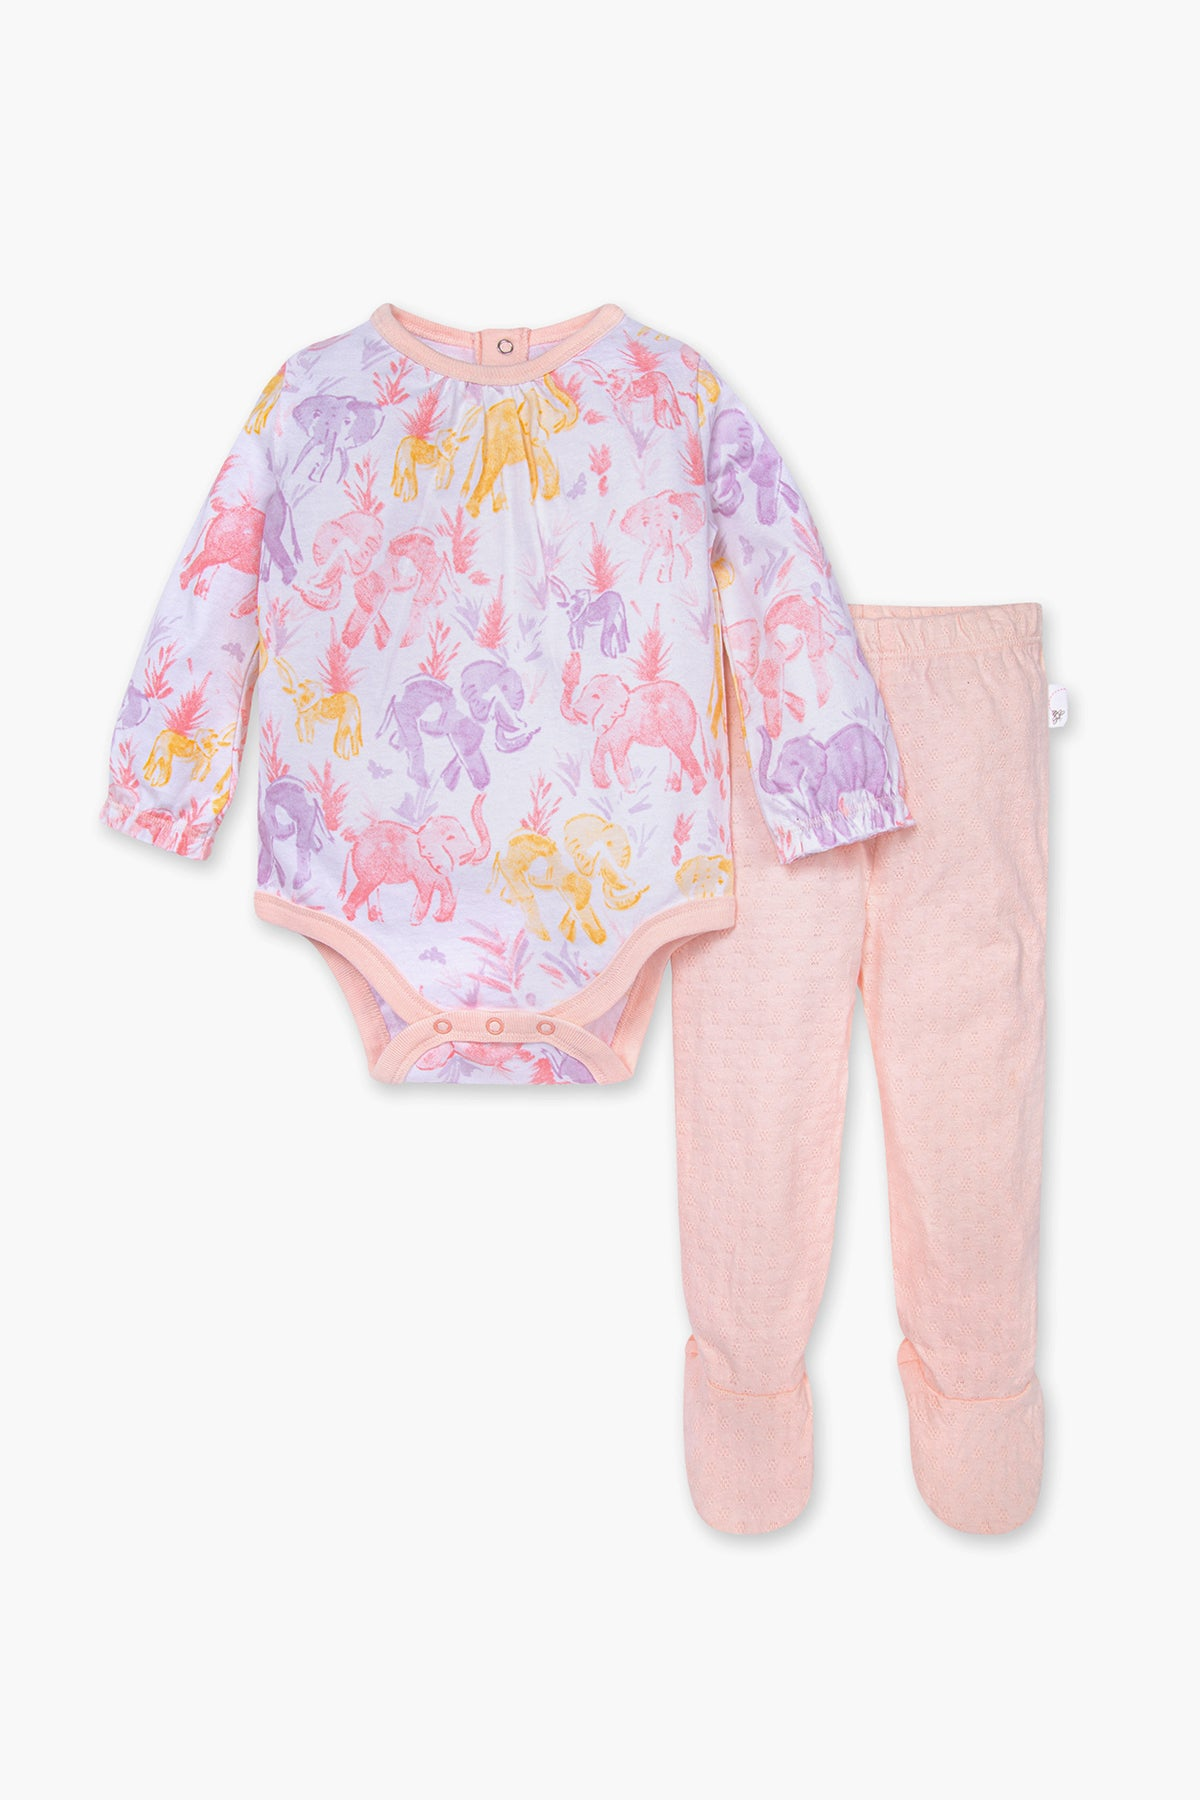 Burt's Bees Ello Elephant 2-Piece Baby Girls Set